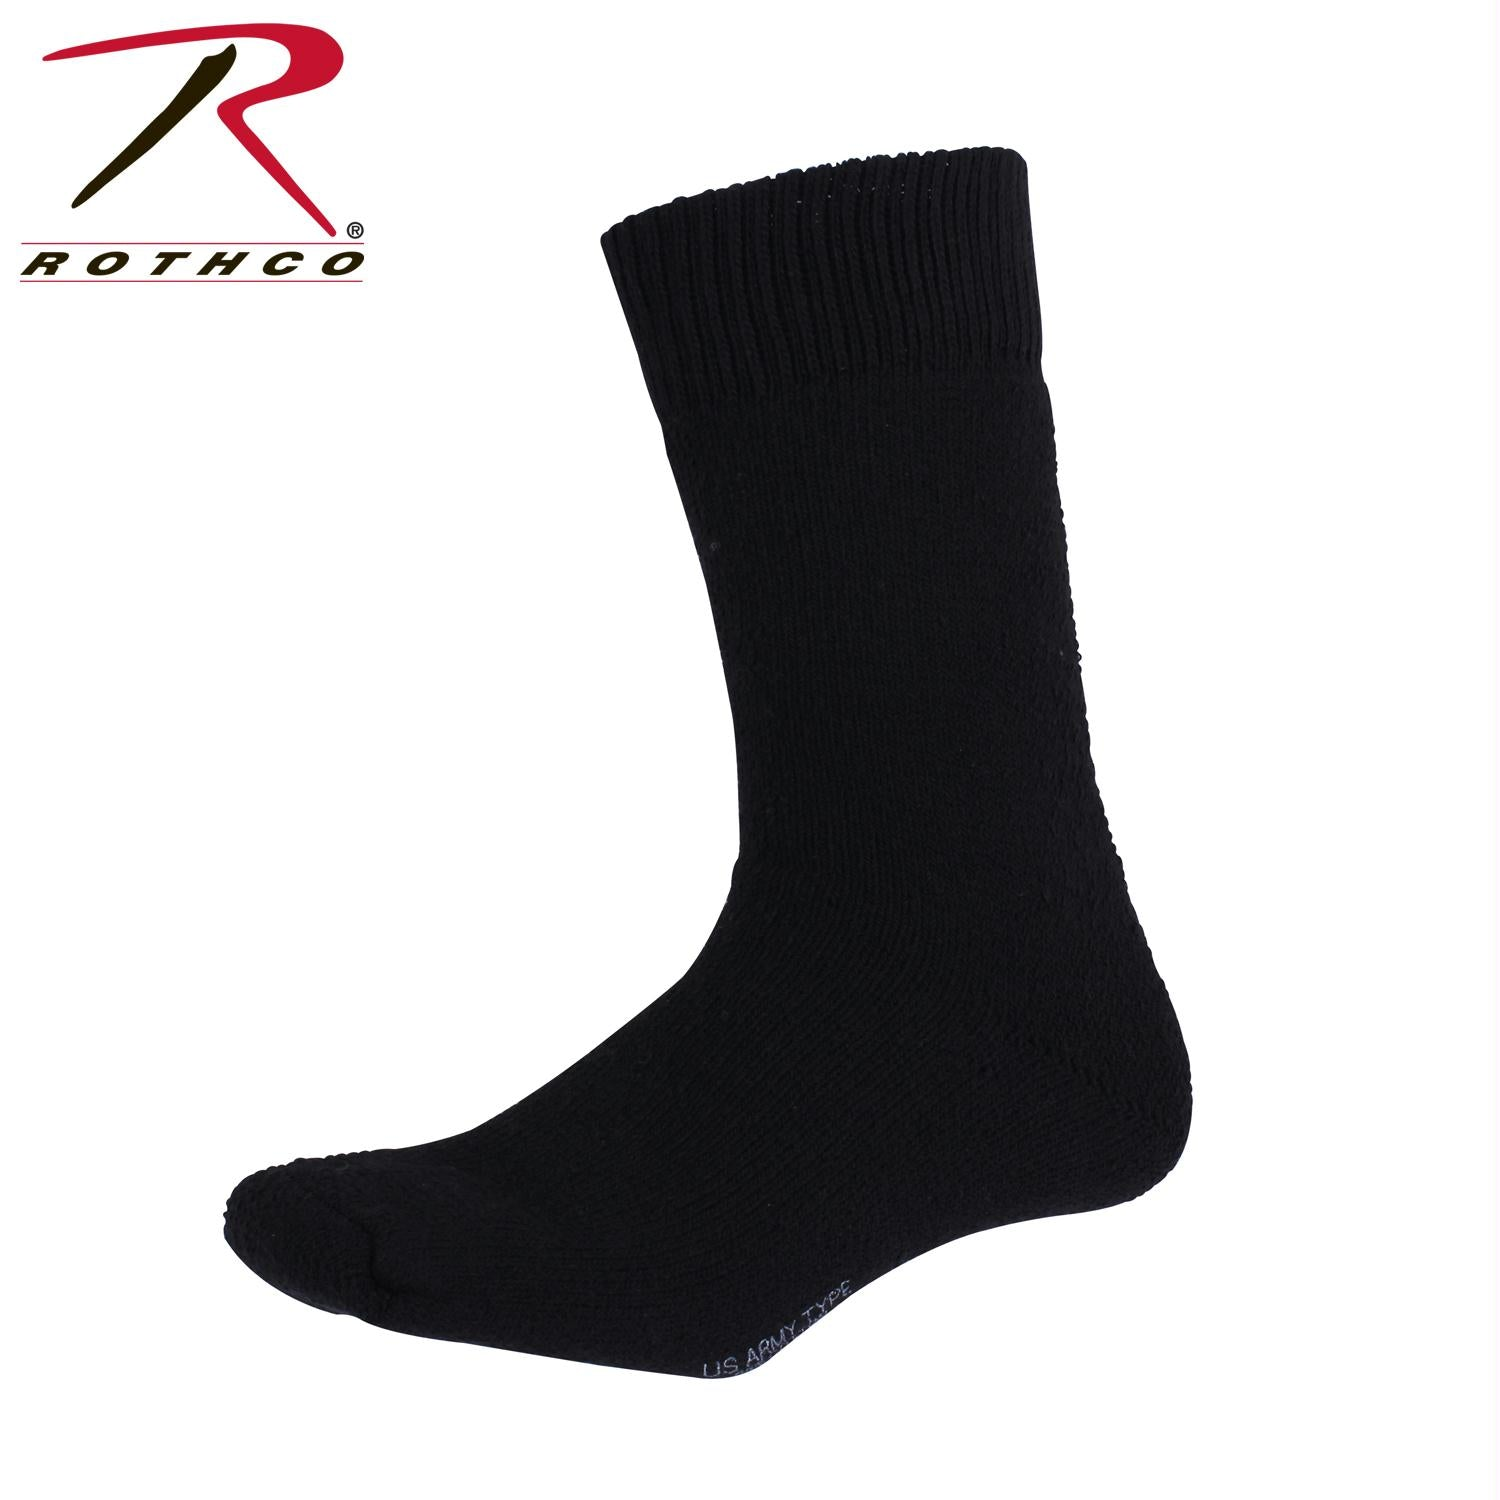 Rothco Thermal Boot Socks - Black